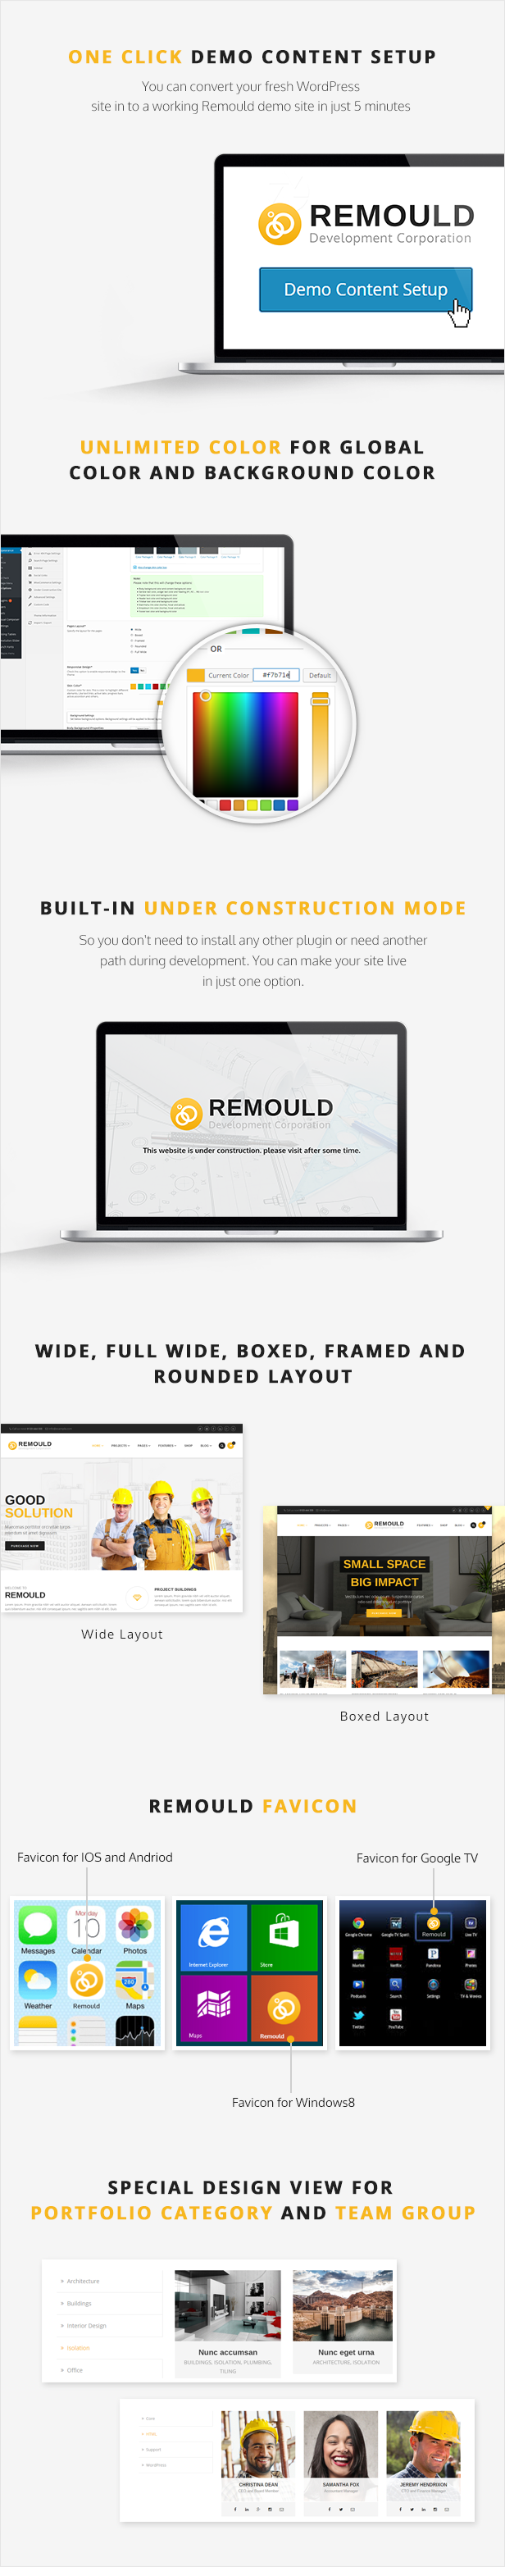 Remould WordPress Theme - One Click demo content setup and other features